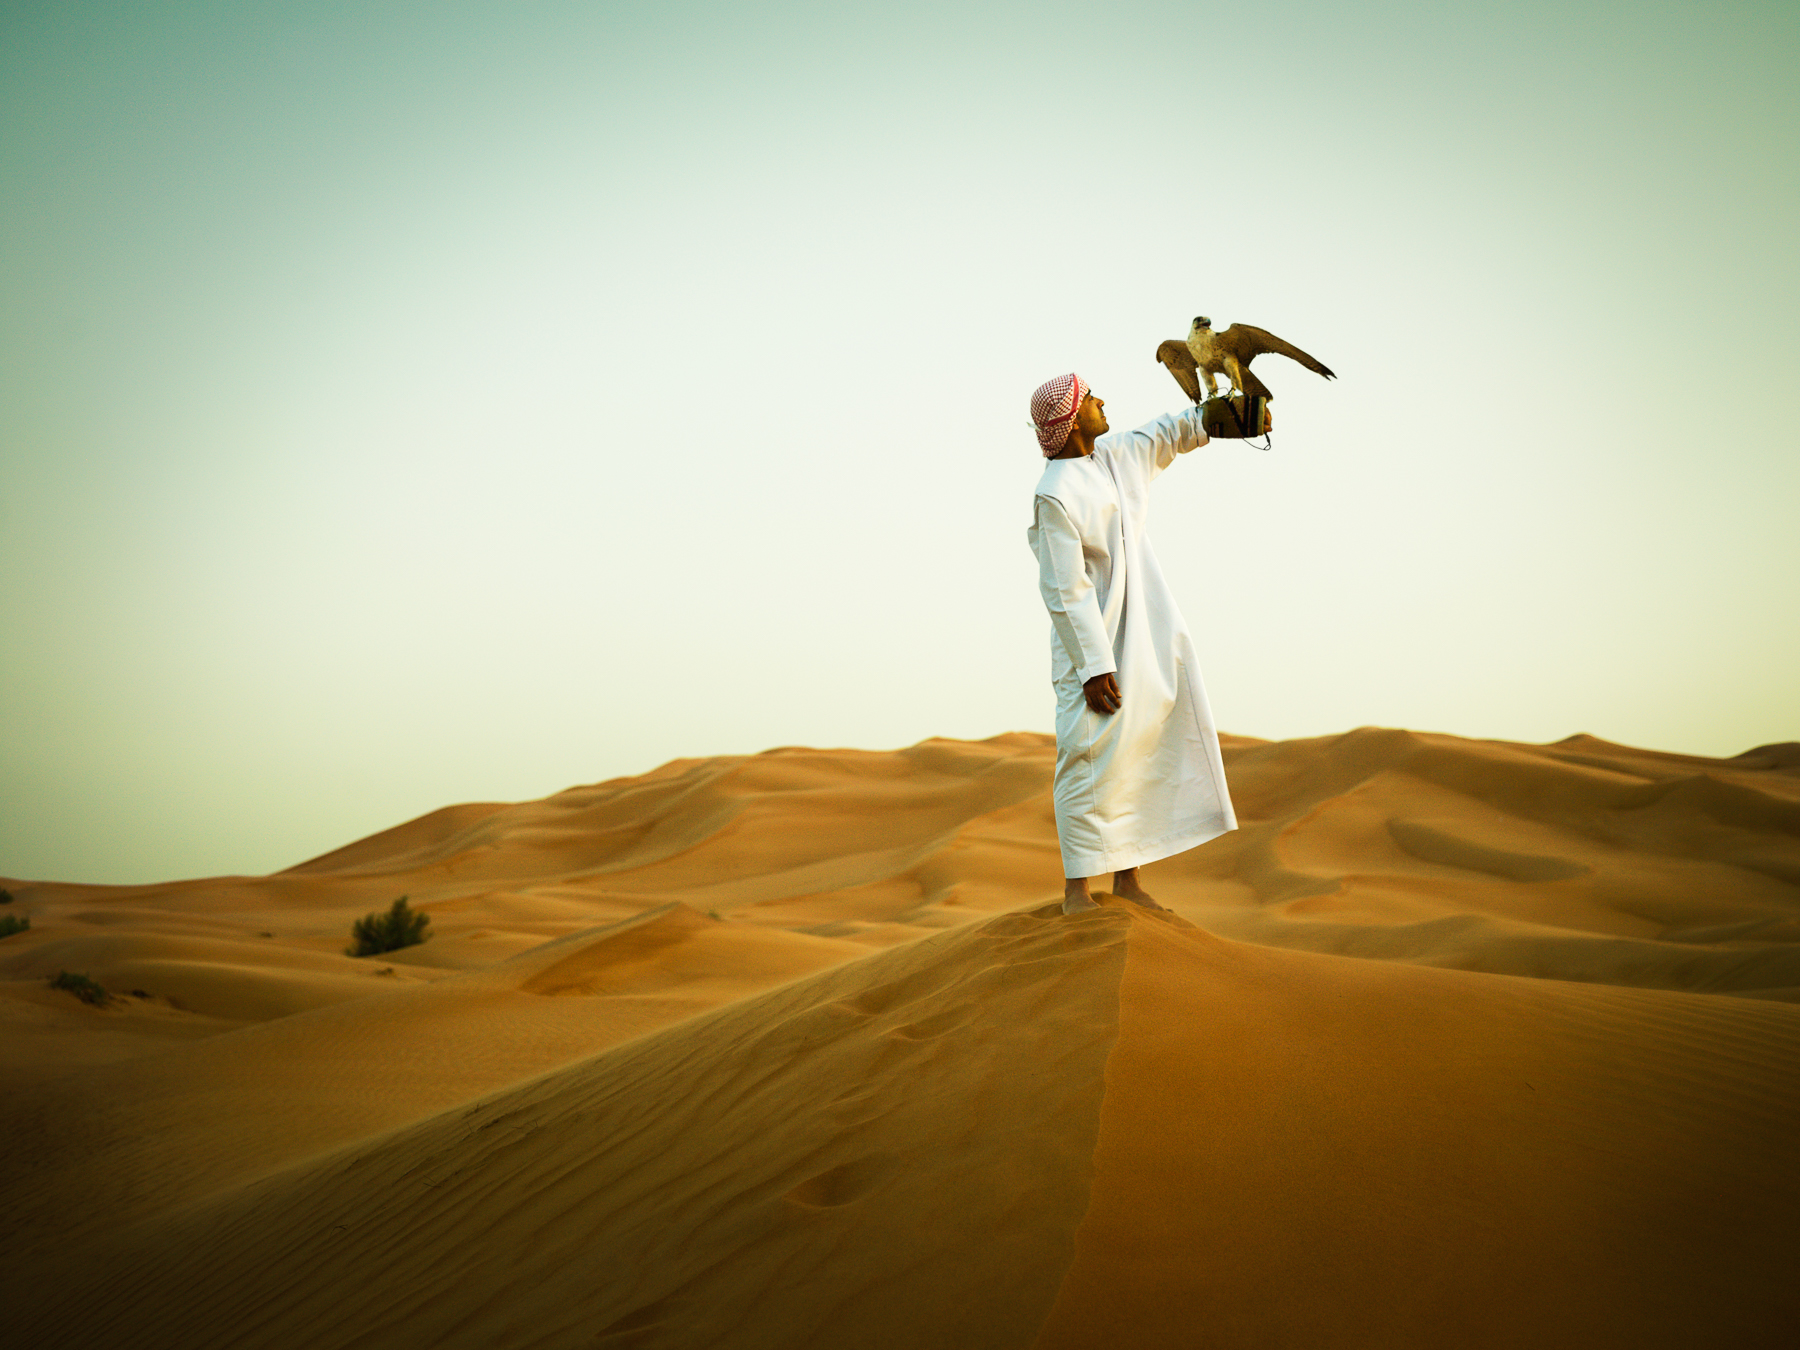 Man and His Falcon in the Desert